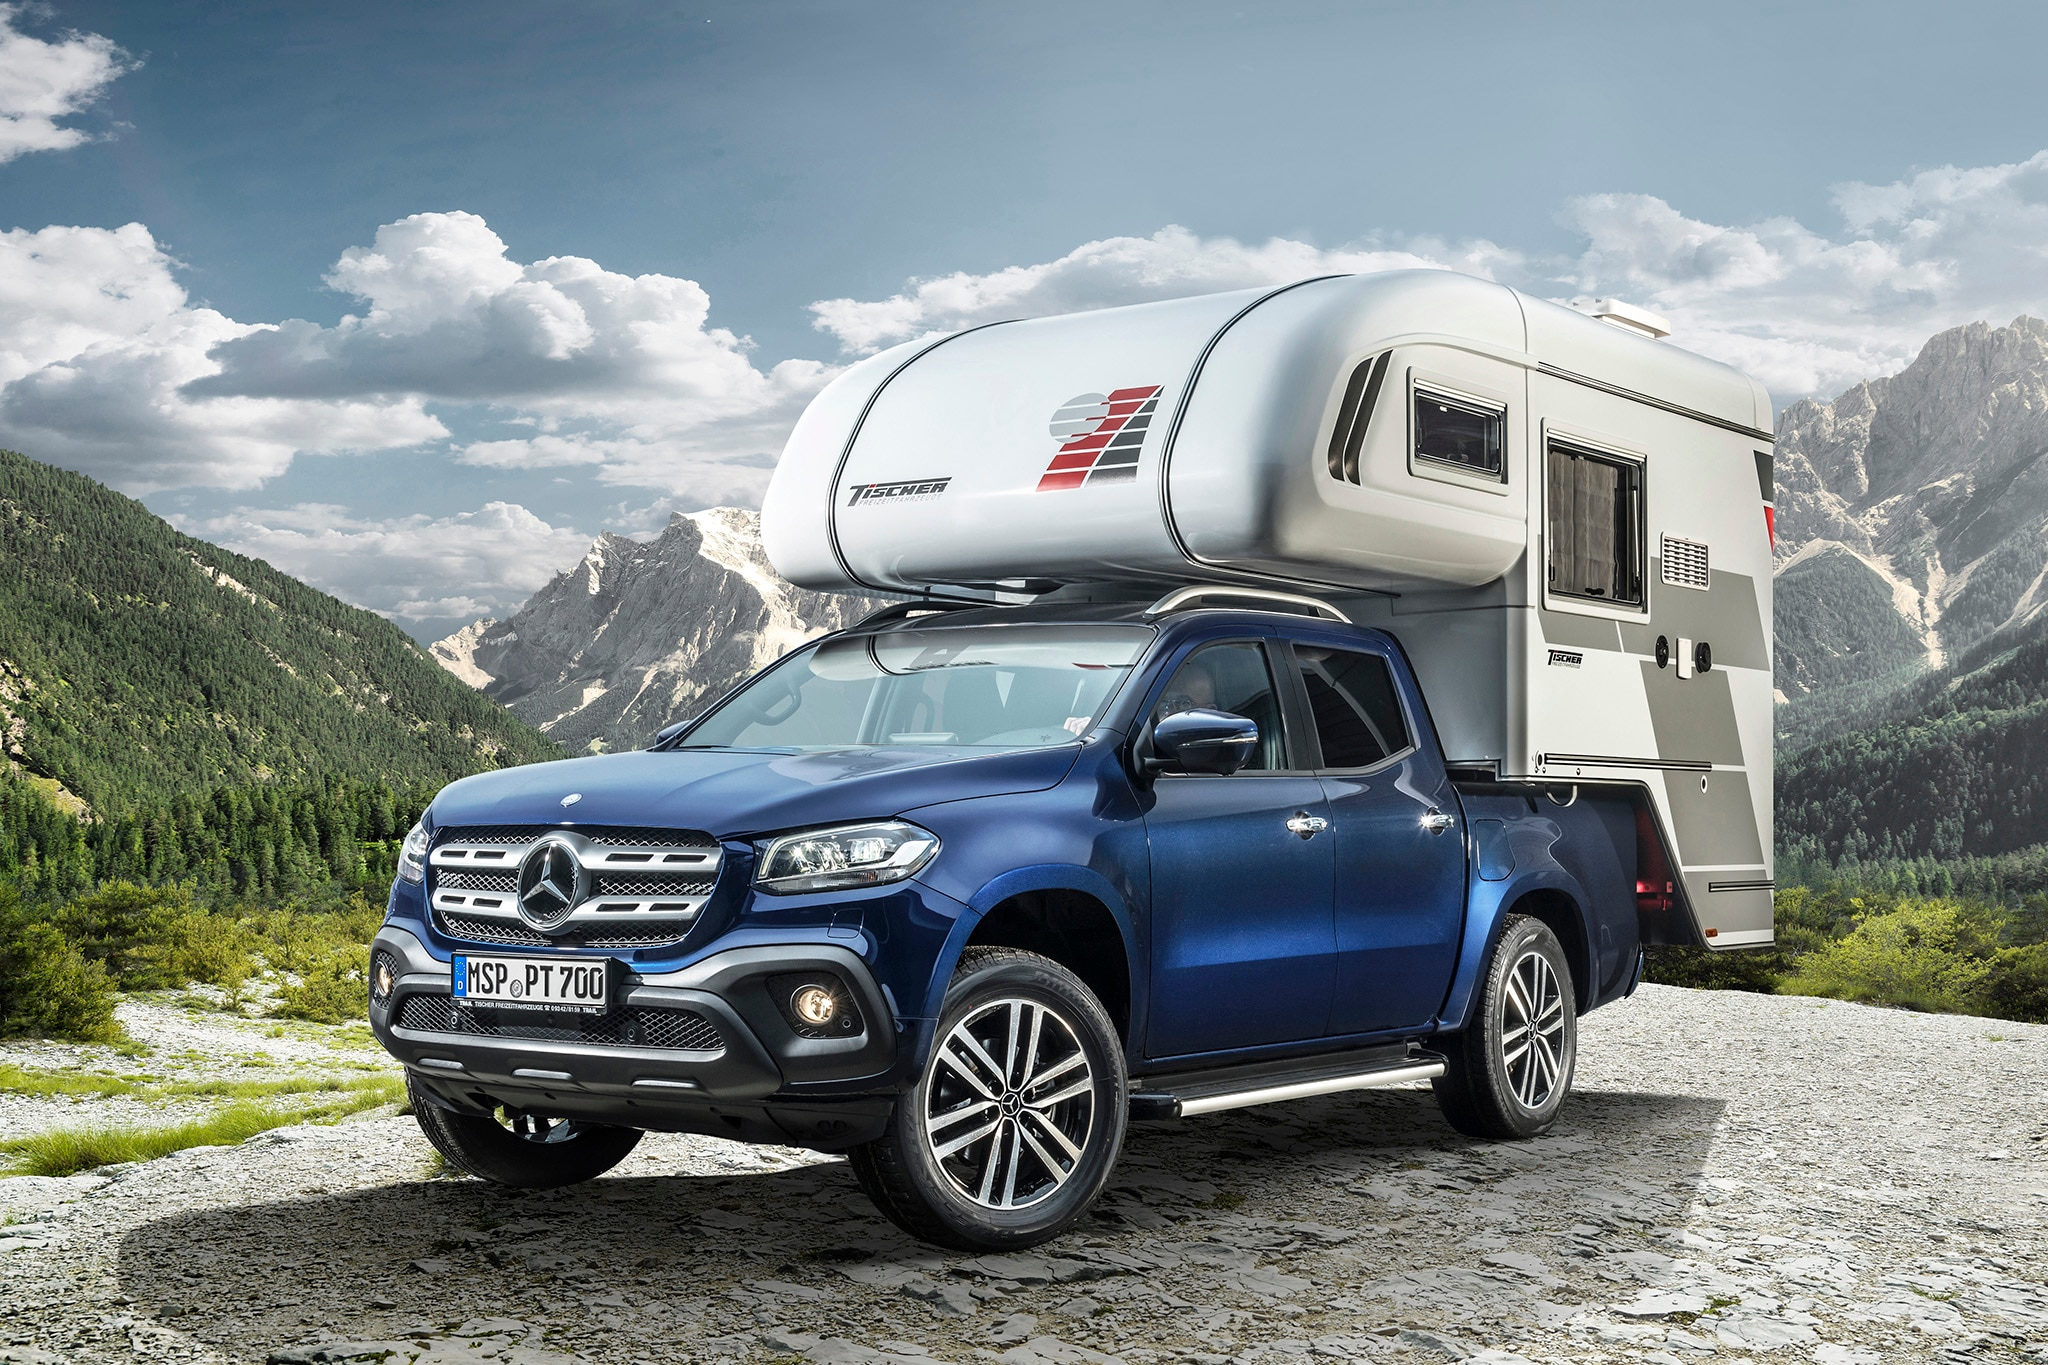 Merc X-Class becomes glamourous outdoor kitchen